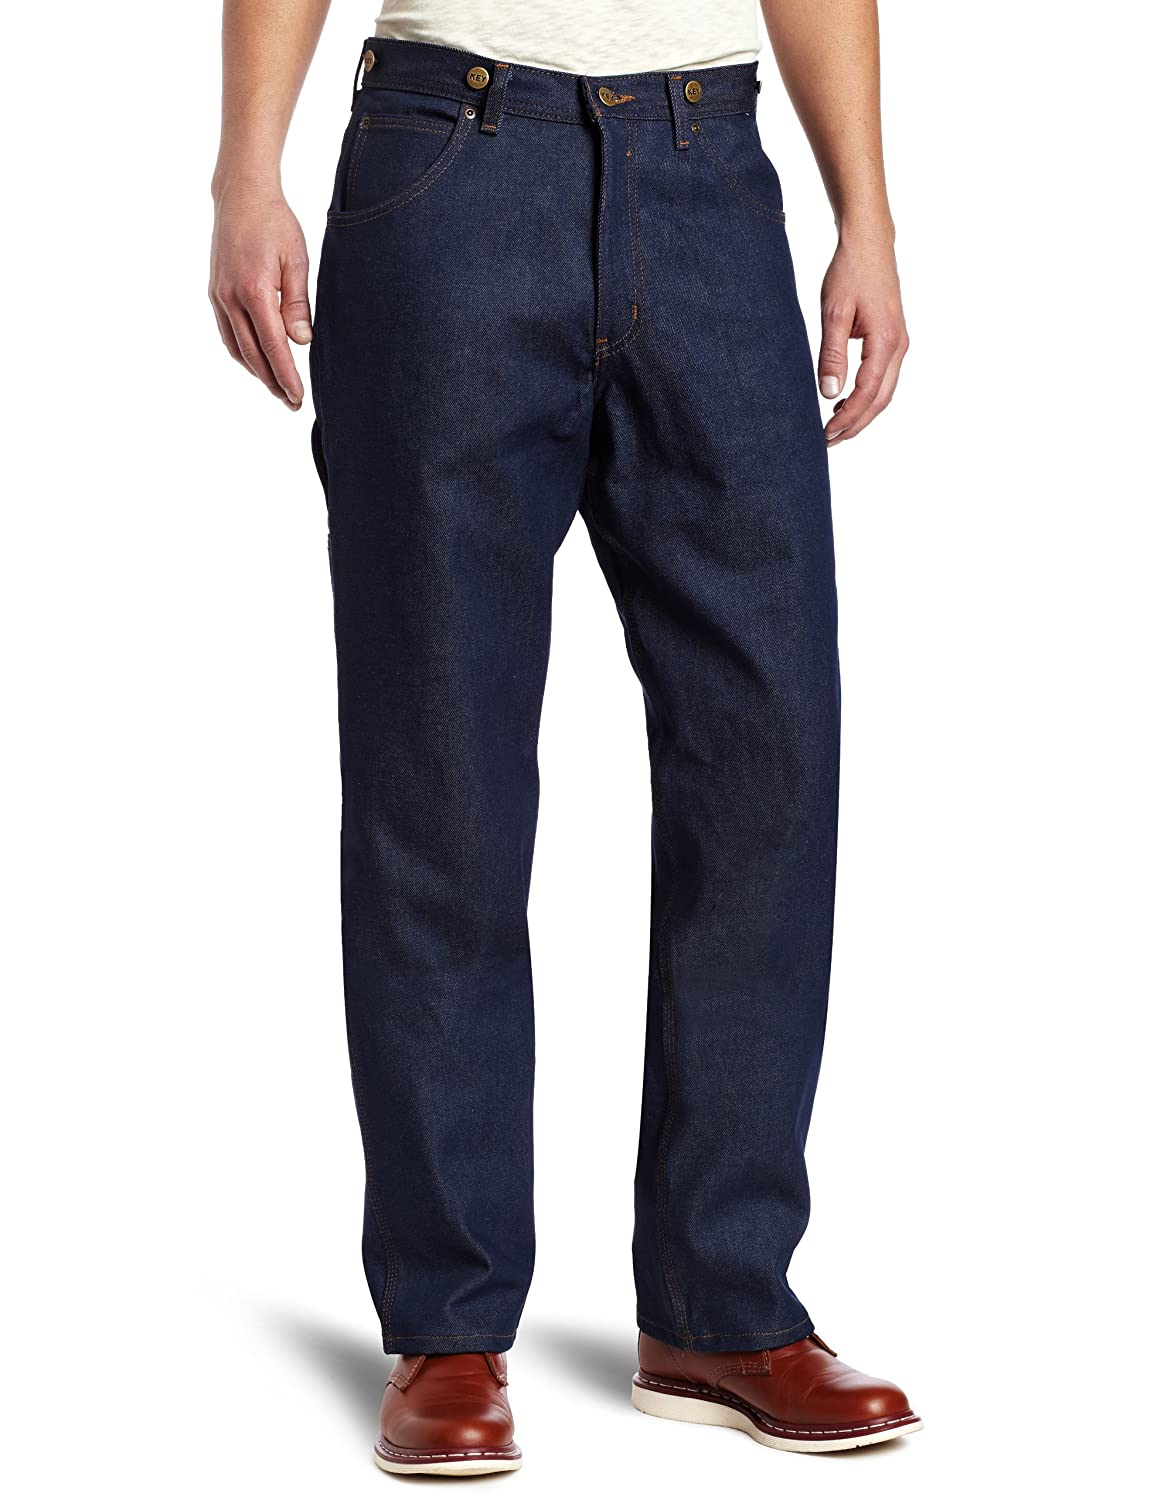 Edwardian Men's Pants, Trousers, Overalls Key Apparel Mens Indigo Denim Logger Dungaree $26.99 AT vintagedancer.com